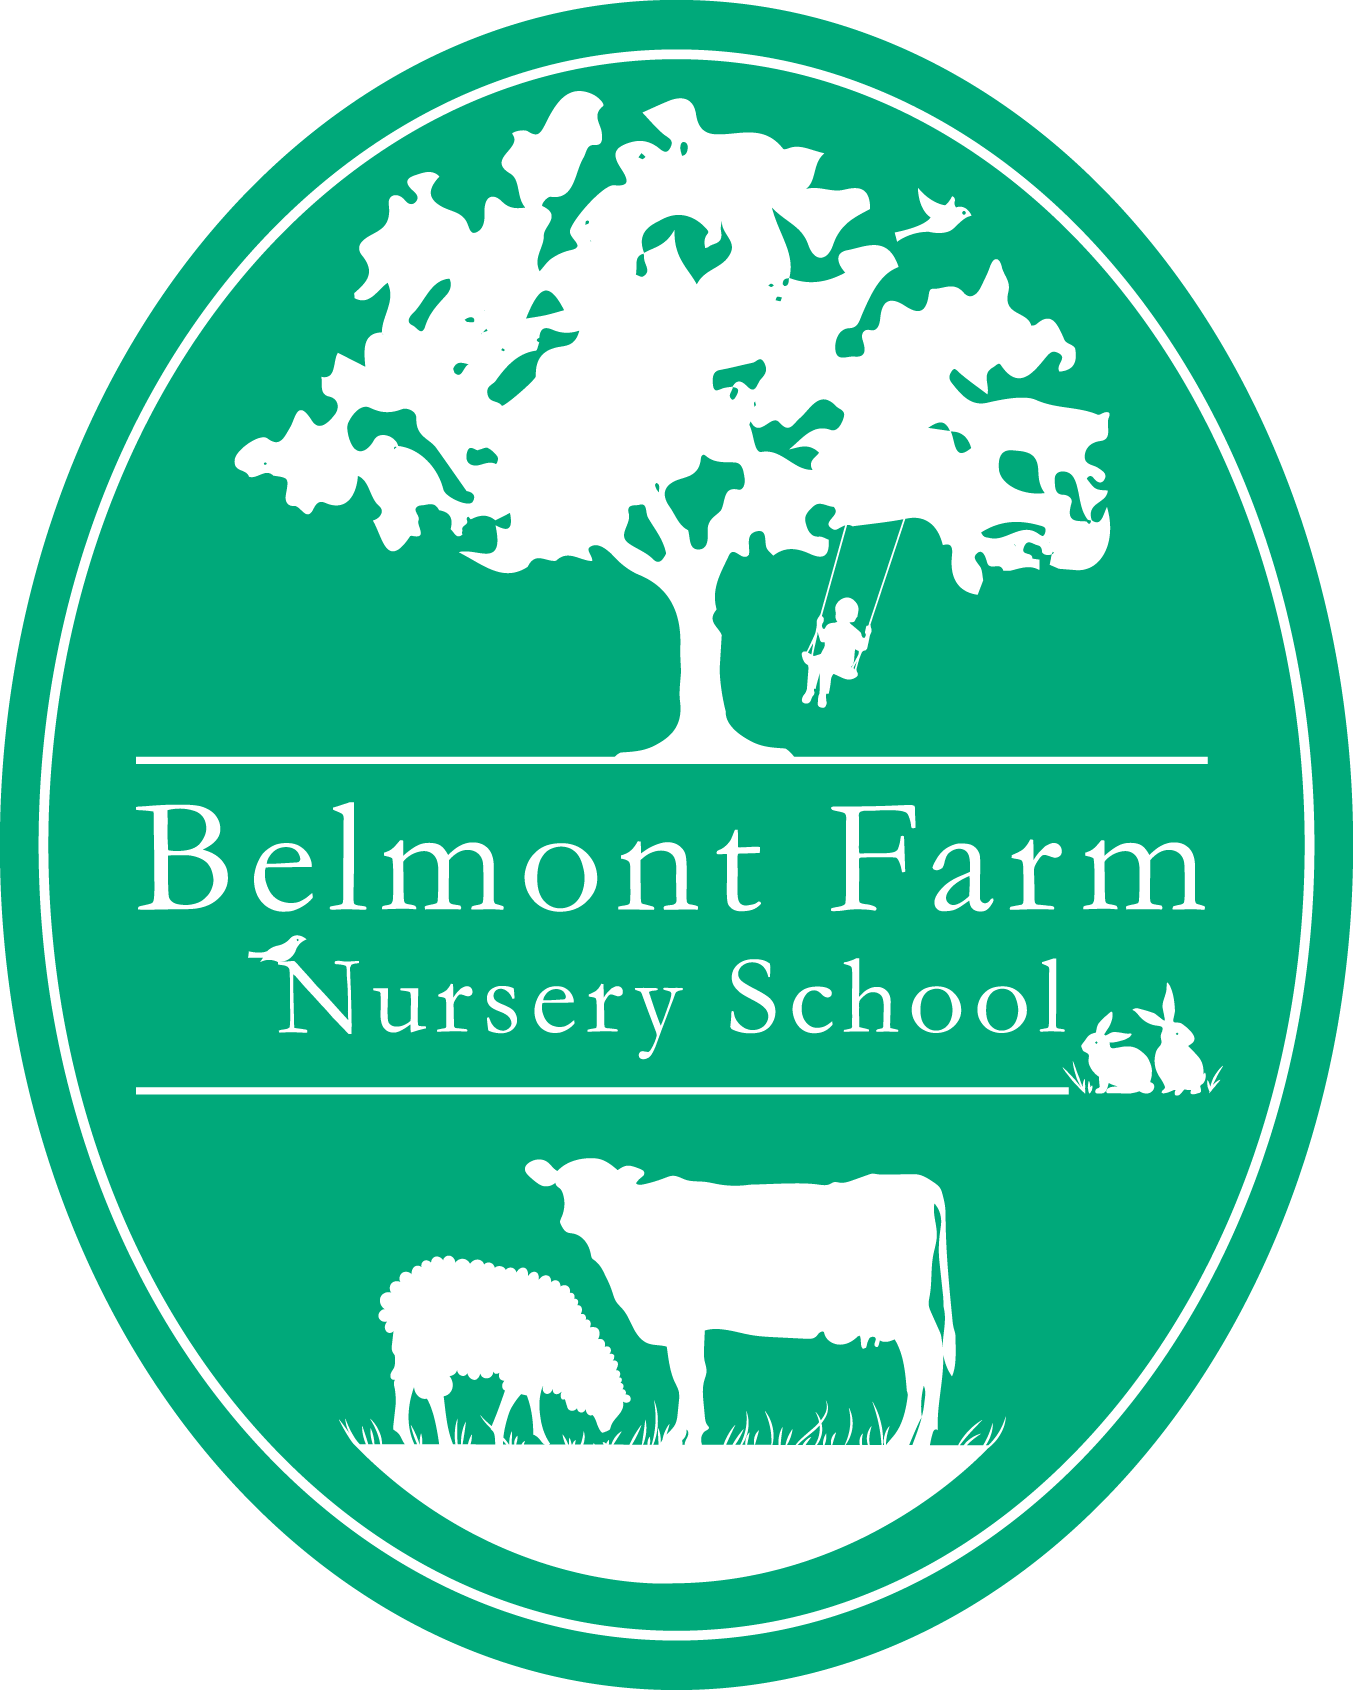 OPENING AUTUMN 2019 - We are building a private day nursery for children aged 3 months- 5 years. Click on the link below to be taken to the website for more information.